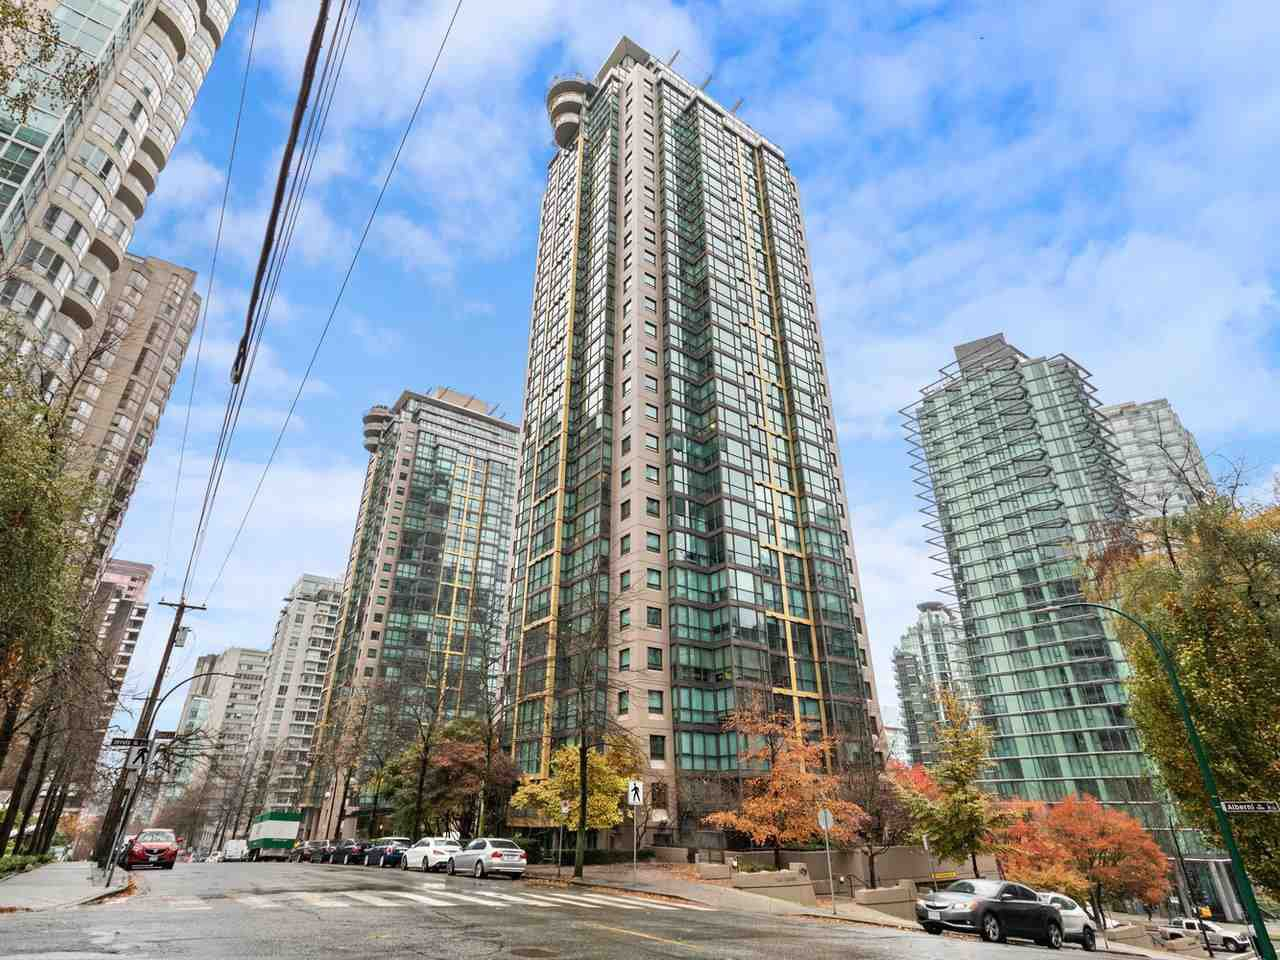 """Main Photo: 2102 1331 ALBERNI Street in Vancouver: West End VW Condo for sale in """"The Lions"""" (Vancouver West)  : MLS®# R2517604"""